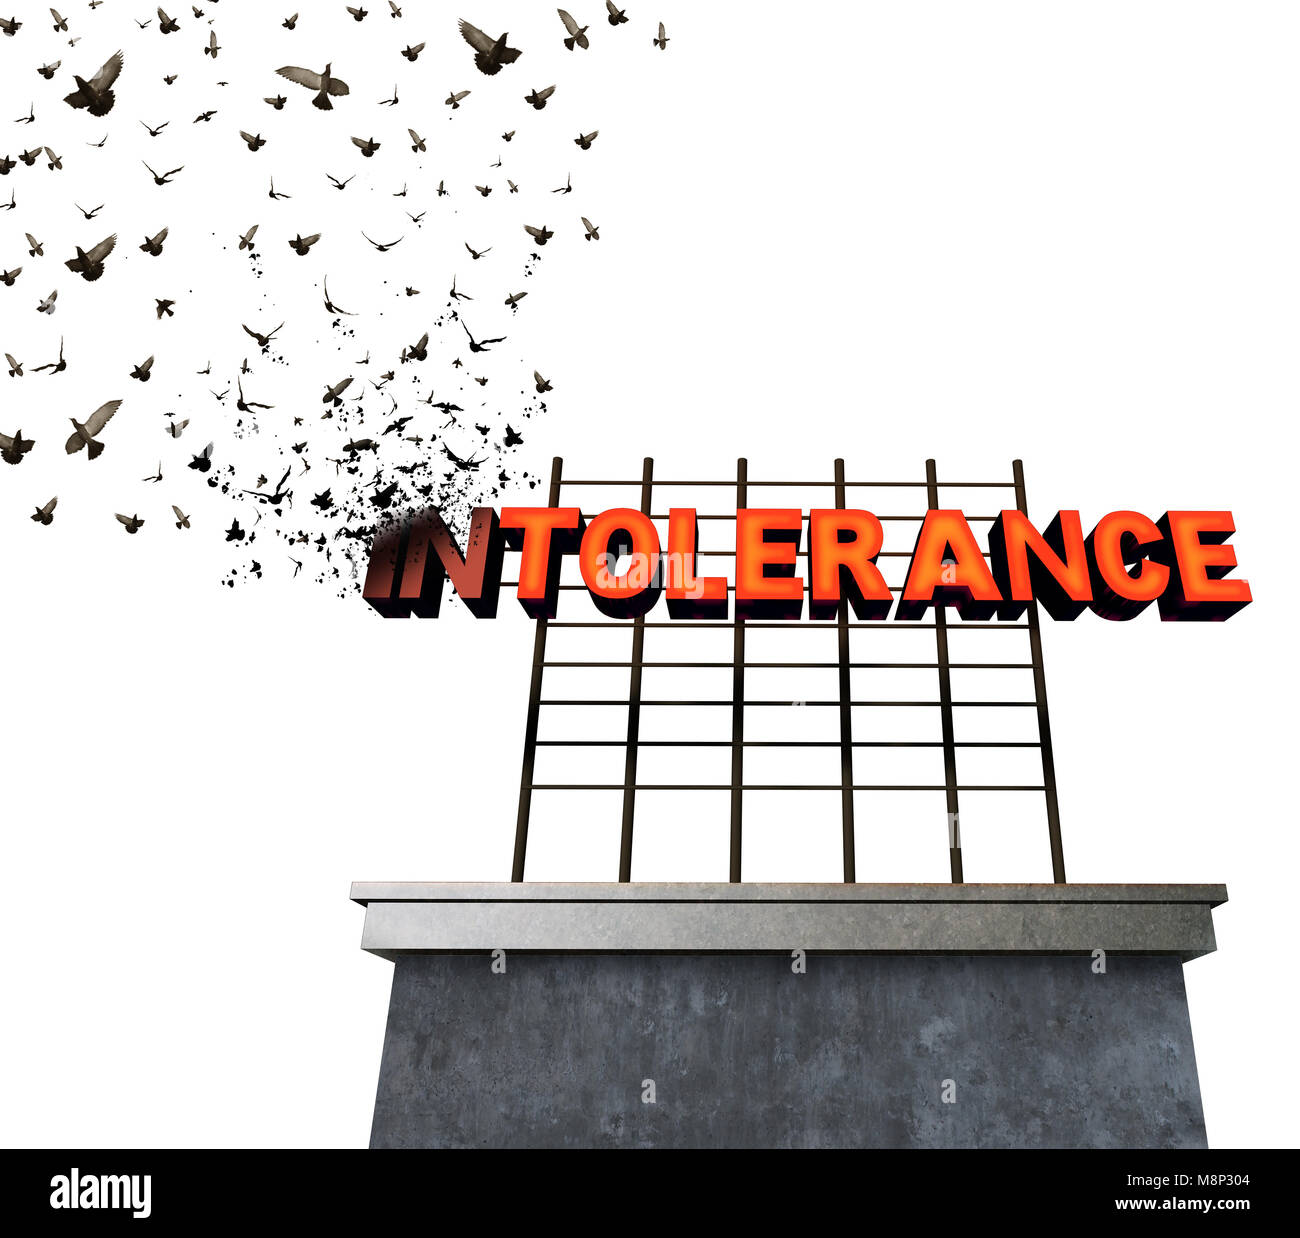 Intolerance and bigotry idea as a sign transforming to flying birds as a surreal metaphor for fighting against racism - Stock Image